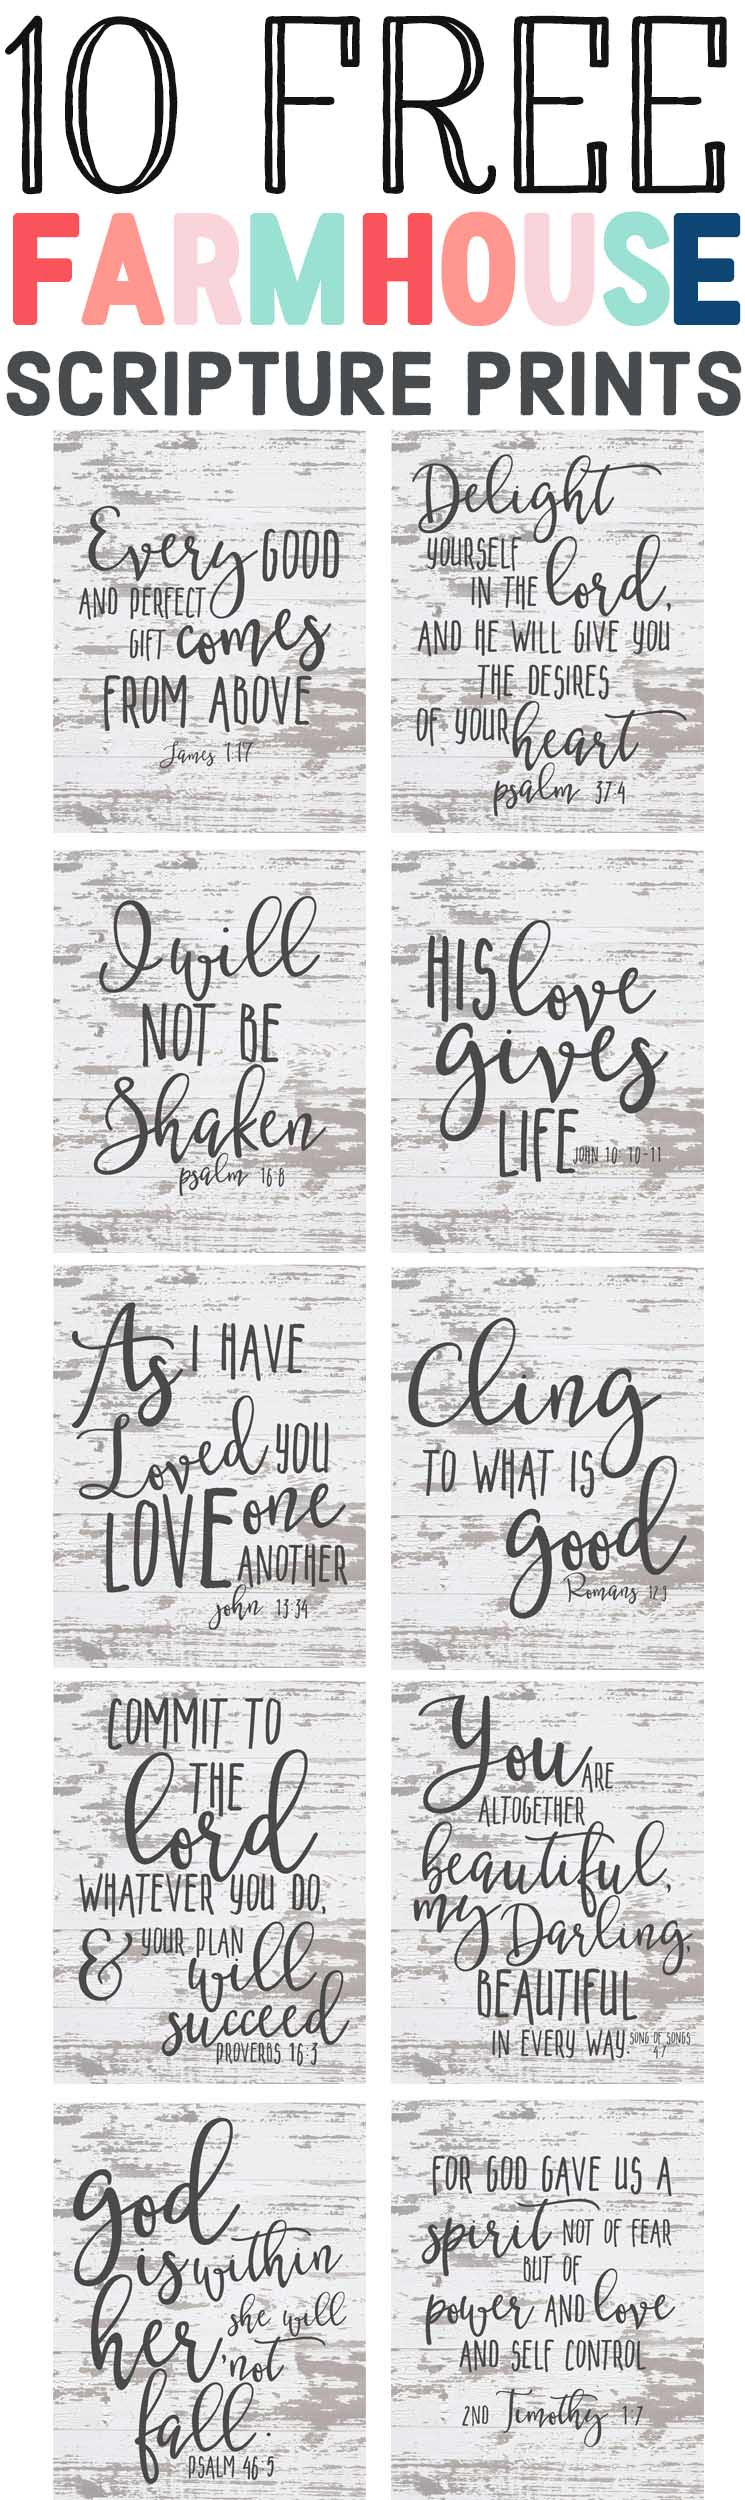 10 Free Farmhouse Style Bible Verse Prints- Update: What